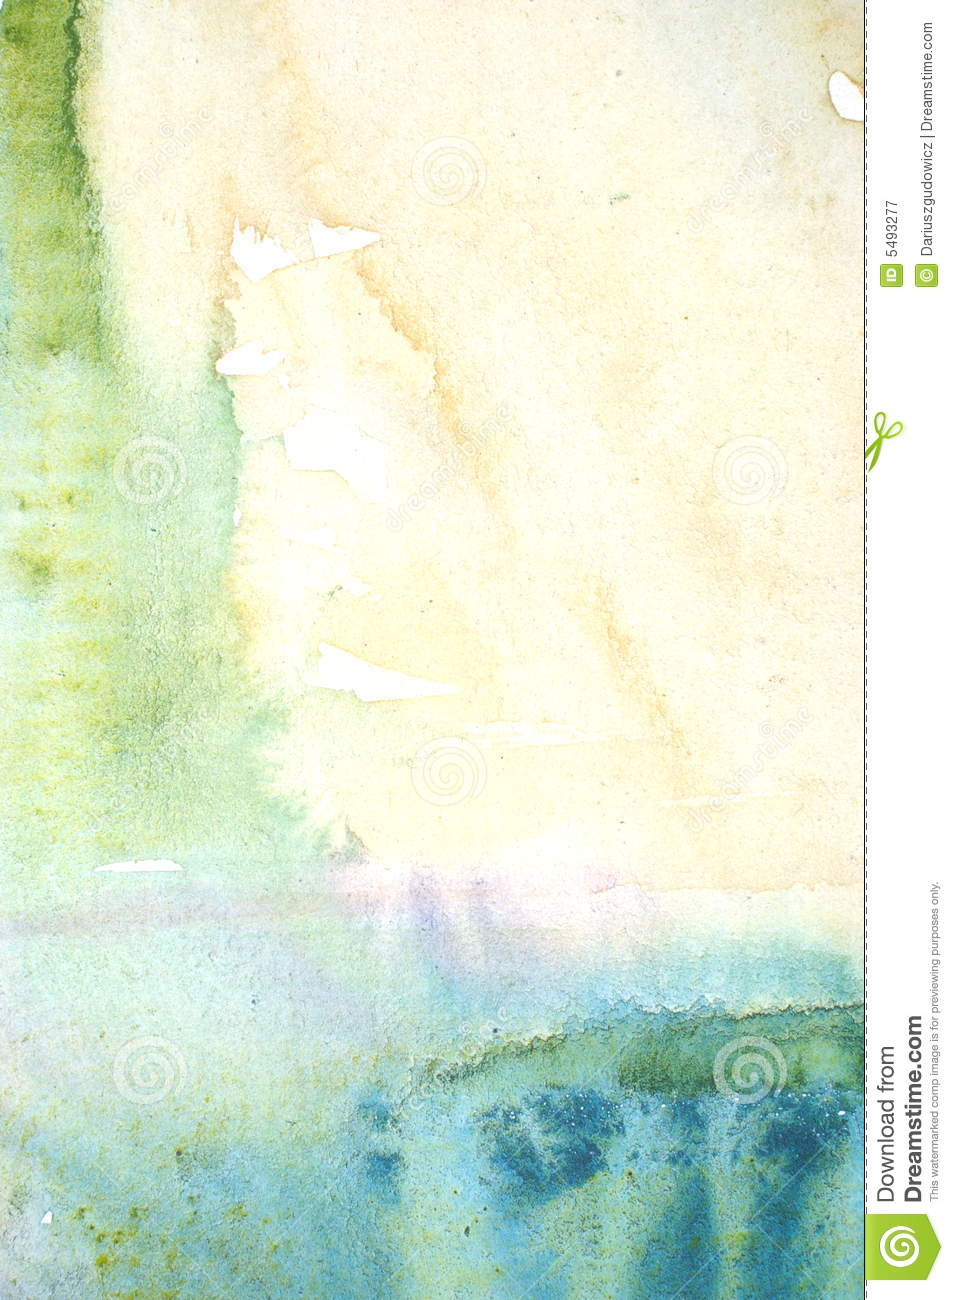 Blue Green Pink Yellow Pastel Stripes also Watercolor Splash besides Background Image Circles Bubbles Sponge Soap Seamless Tileable Pale Goldenrod Pastel Green 238n84 also Stock Image Soft Grunge Stripe Background Image310751 in addition Clip 1313488 Stock Footage Fluid Liquid Water Colorful Motion Swirls Curves Creating A Random Fractal Abstract Green Wallpaper. on pastel yellow background wallpaper